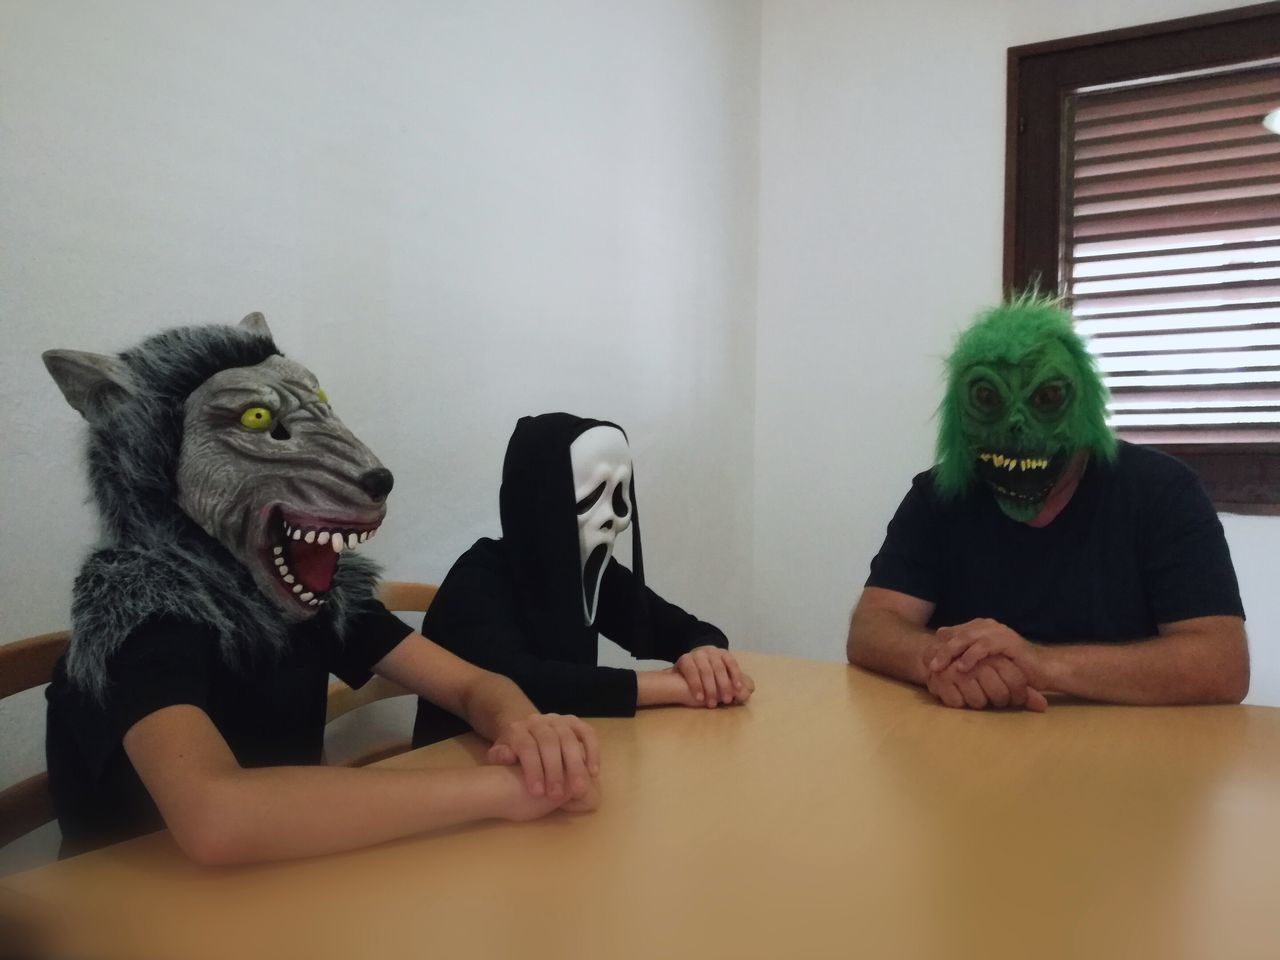 😁 Mask - Disguise Humor Indoors  Disguise Business Finance And Industry Anger Fun Dishonesty Ghostface Wolf Monster Meeting Halloween Masks Halloween Costumes Seriously Creativity Real People Discussion Silent Silence Non-verbal